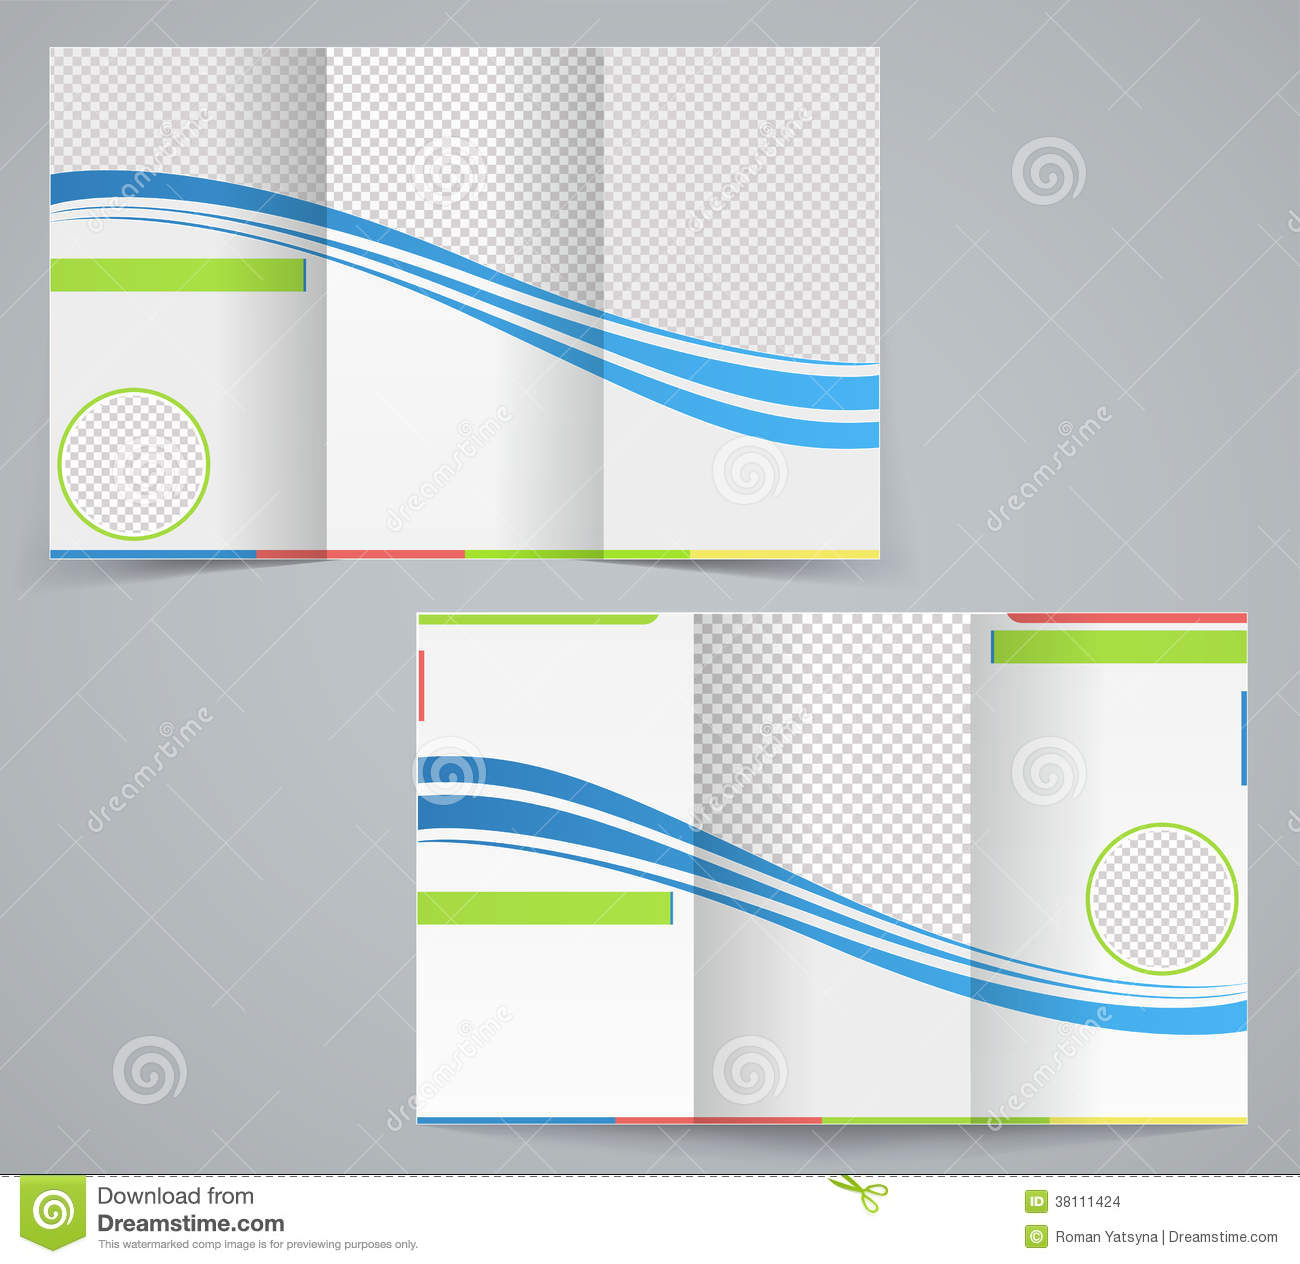 Tri fold business brochure template stock vector for Tri fold brochure design templates